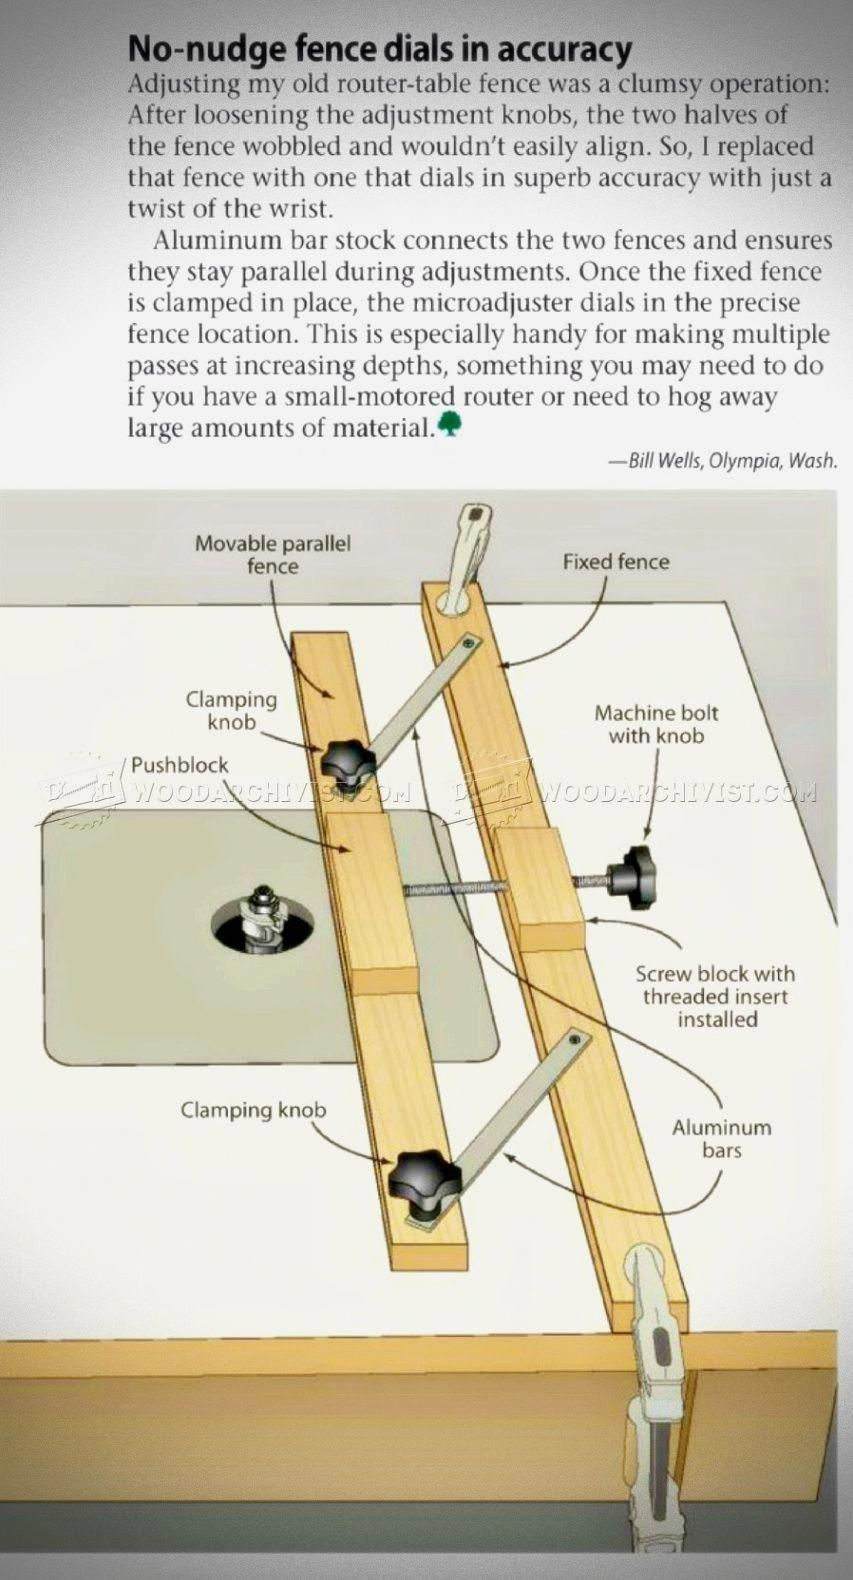 A Few Valuable Concepts On Core Aspects Of Very Cool Wood